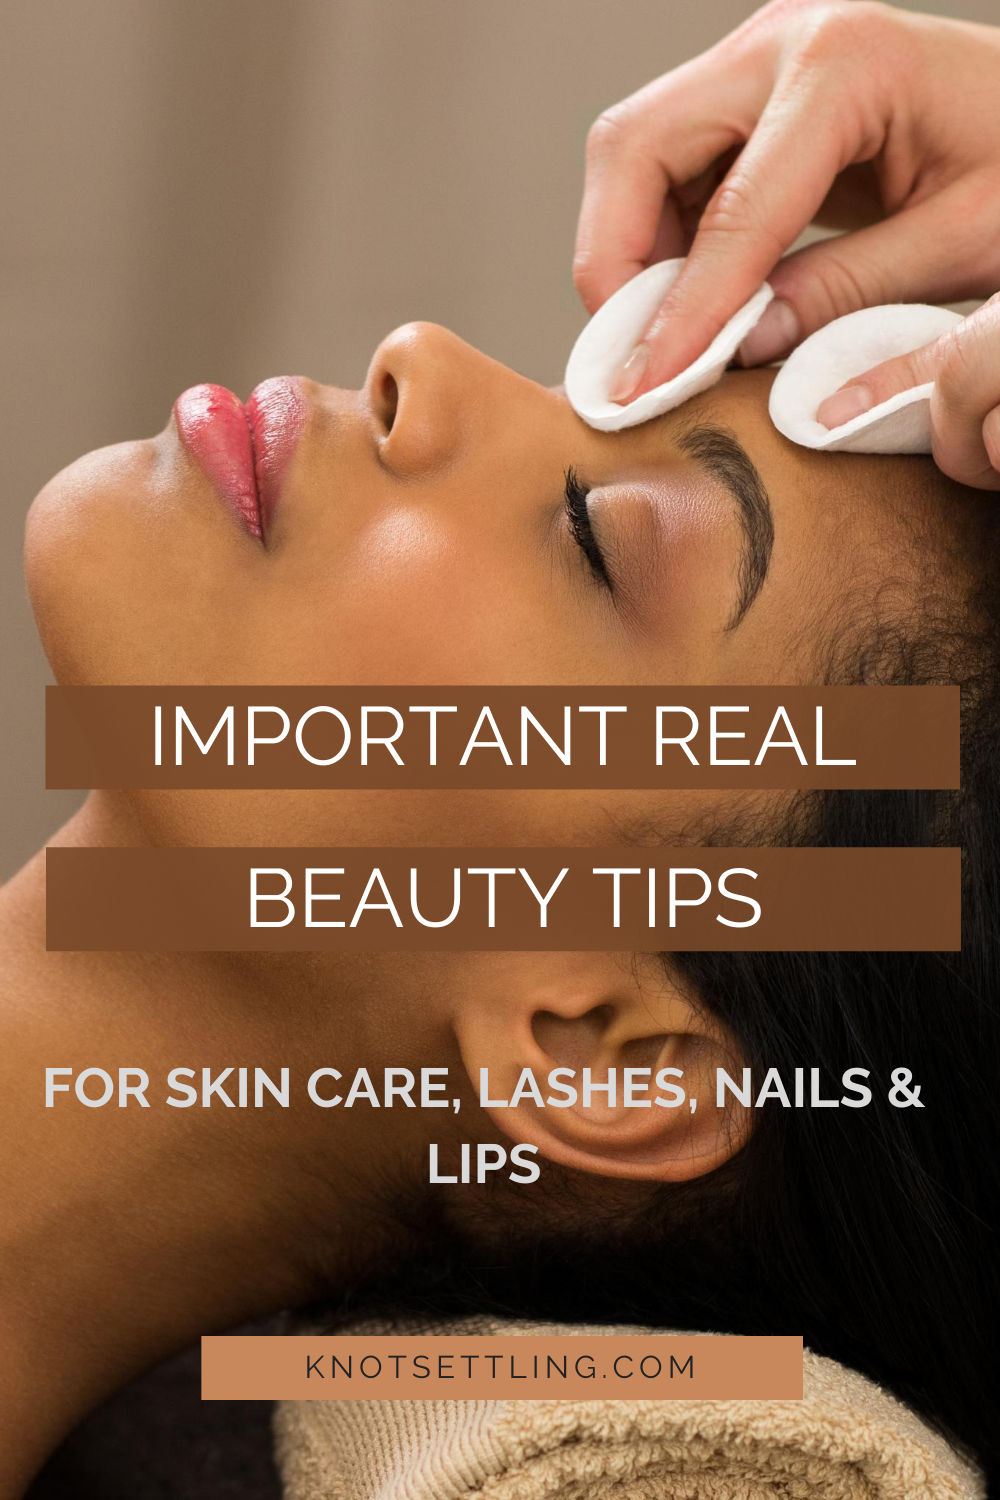 IMPORTANT REAL BEAUTY TIPS FOR SKIN CARE – Nails